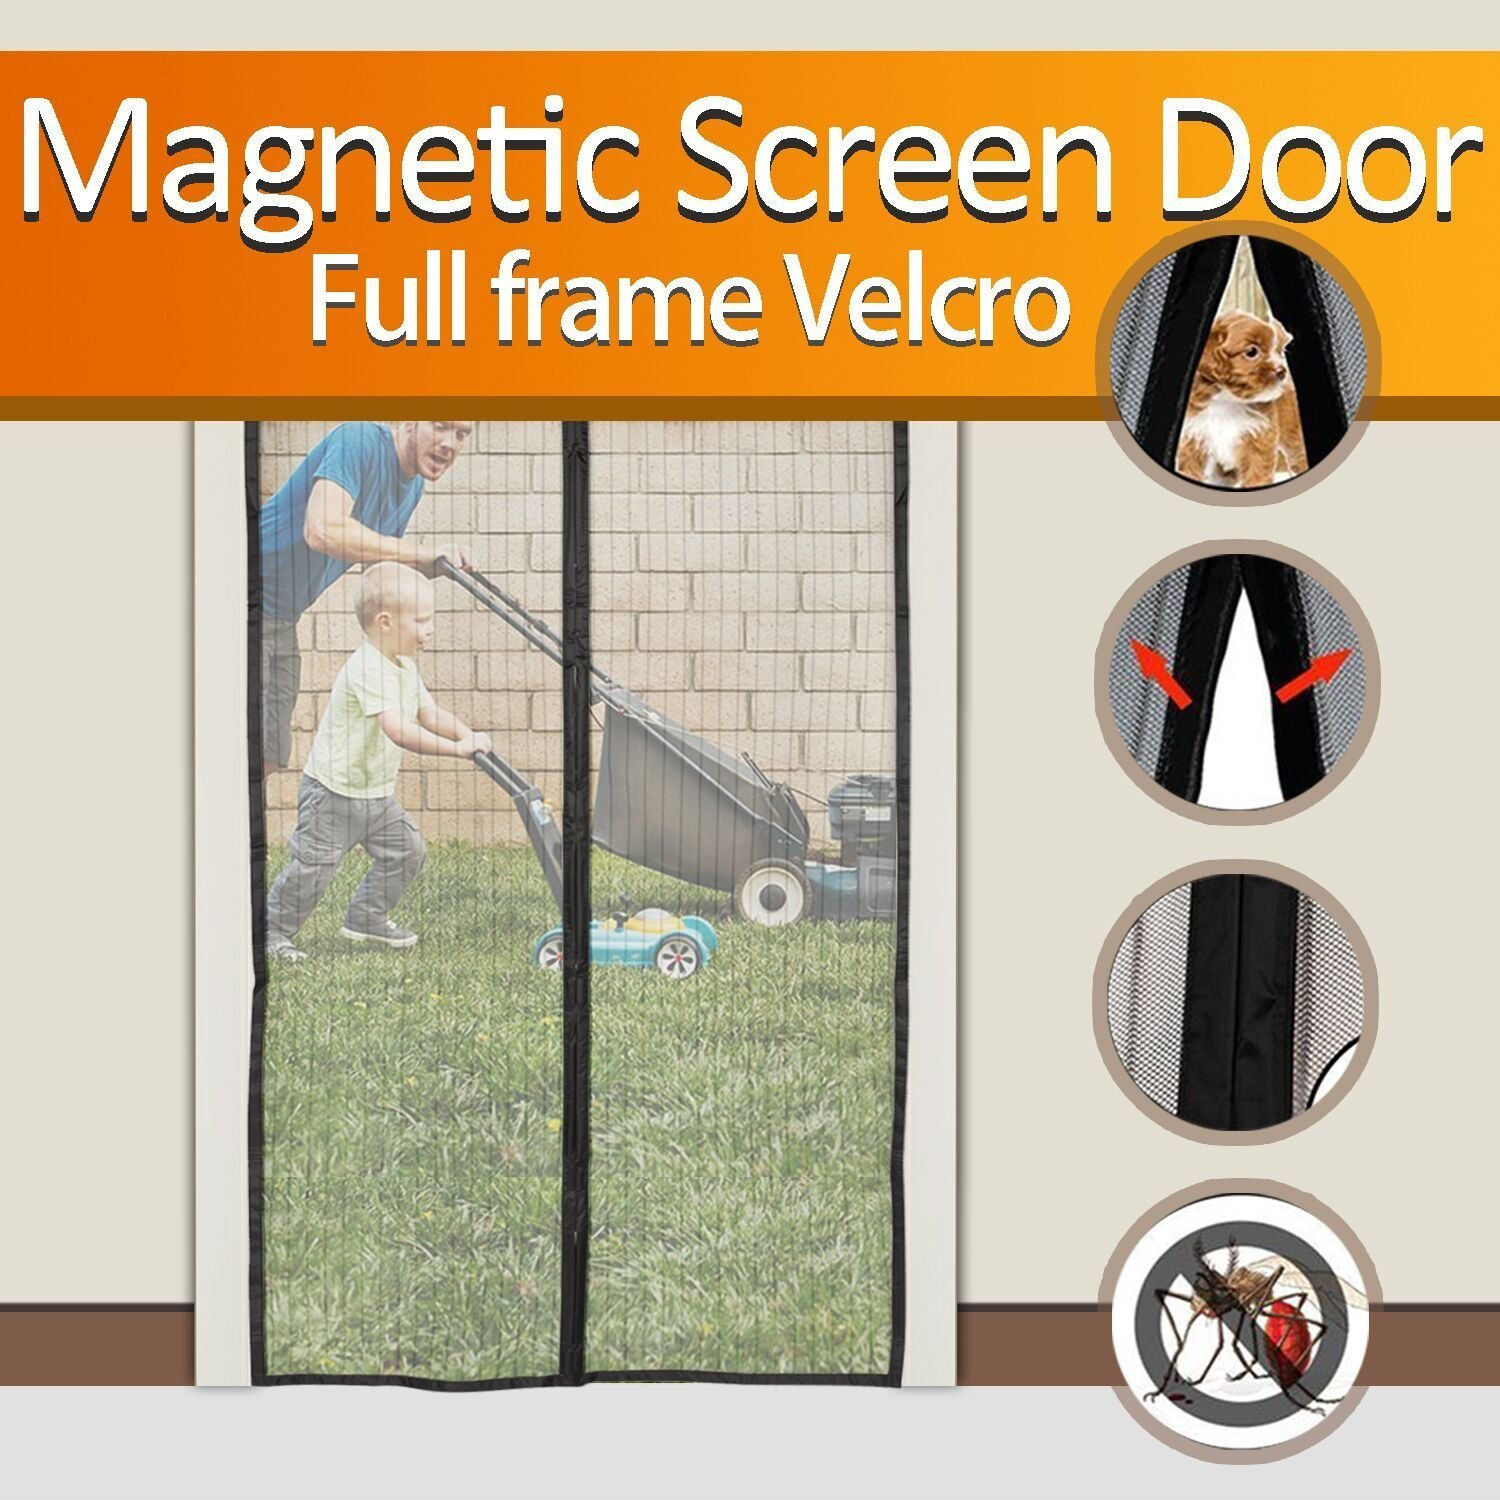 "Magnetic Screen Door, BESTOPE Mesh Curtain - Keeps Bugs Out Let Fresh Air In, Full Frame Velcro Mesh with Top-to-Bottom Seal No More Mosquitos or Flying Insects Fits Doors Up To 34"" x 82"" MAX"